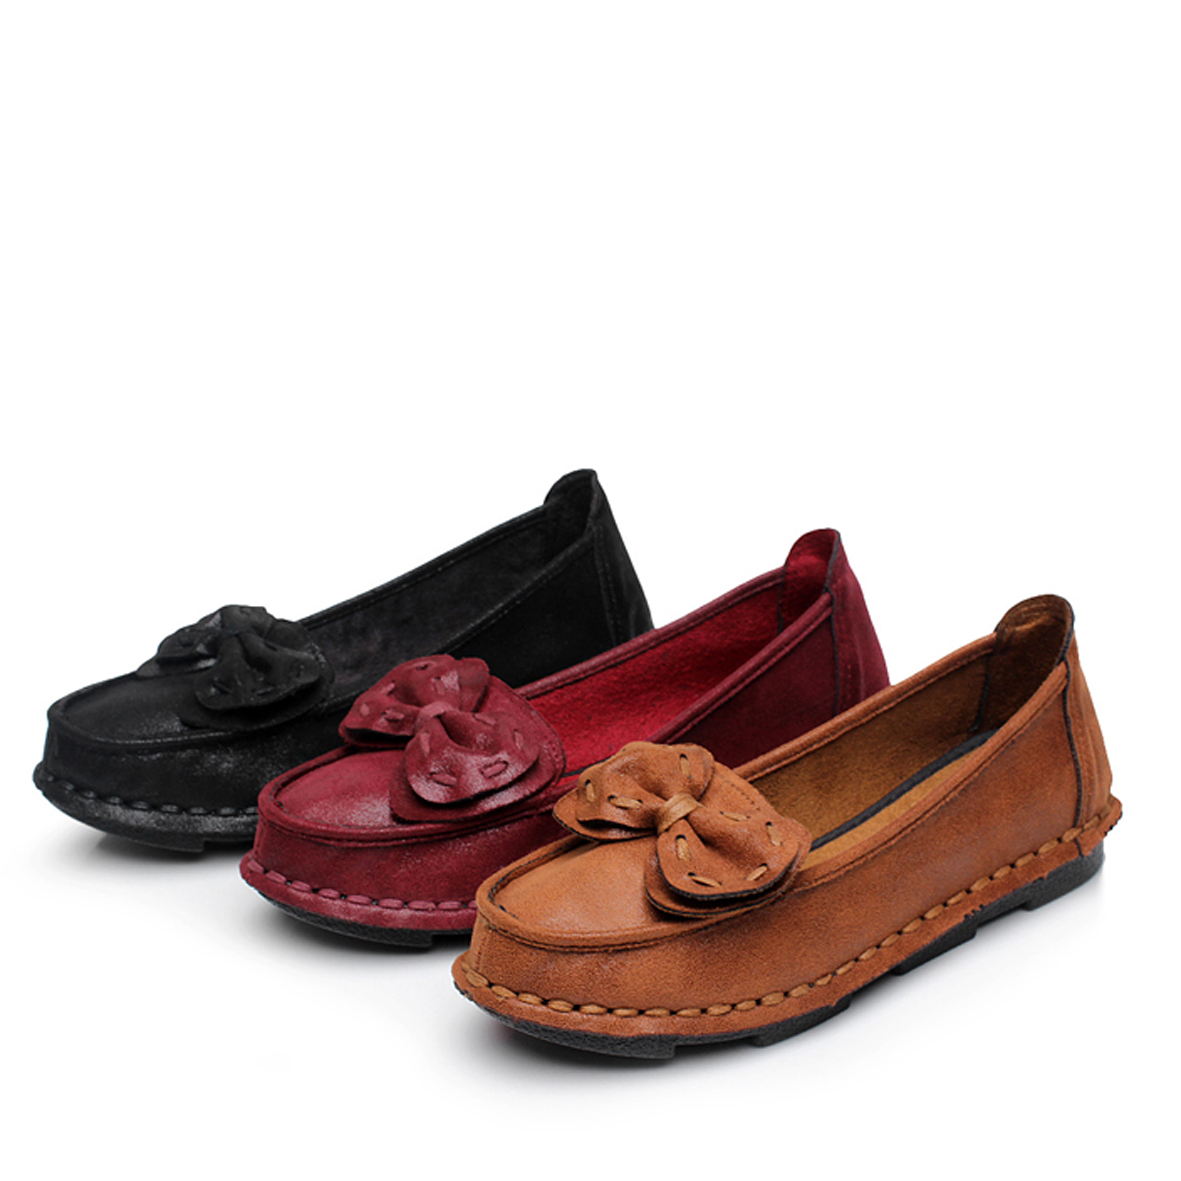 Women Flats Shoes New Chinese Apron Pregnant Shoes Hand Made Embroidered Elegant Shoes Slip On the Shoe for Women in Women 39 s Flats from Shoes